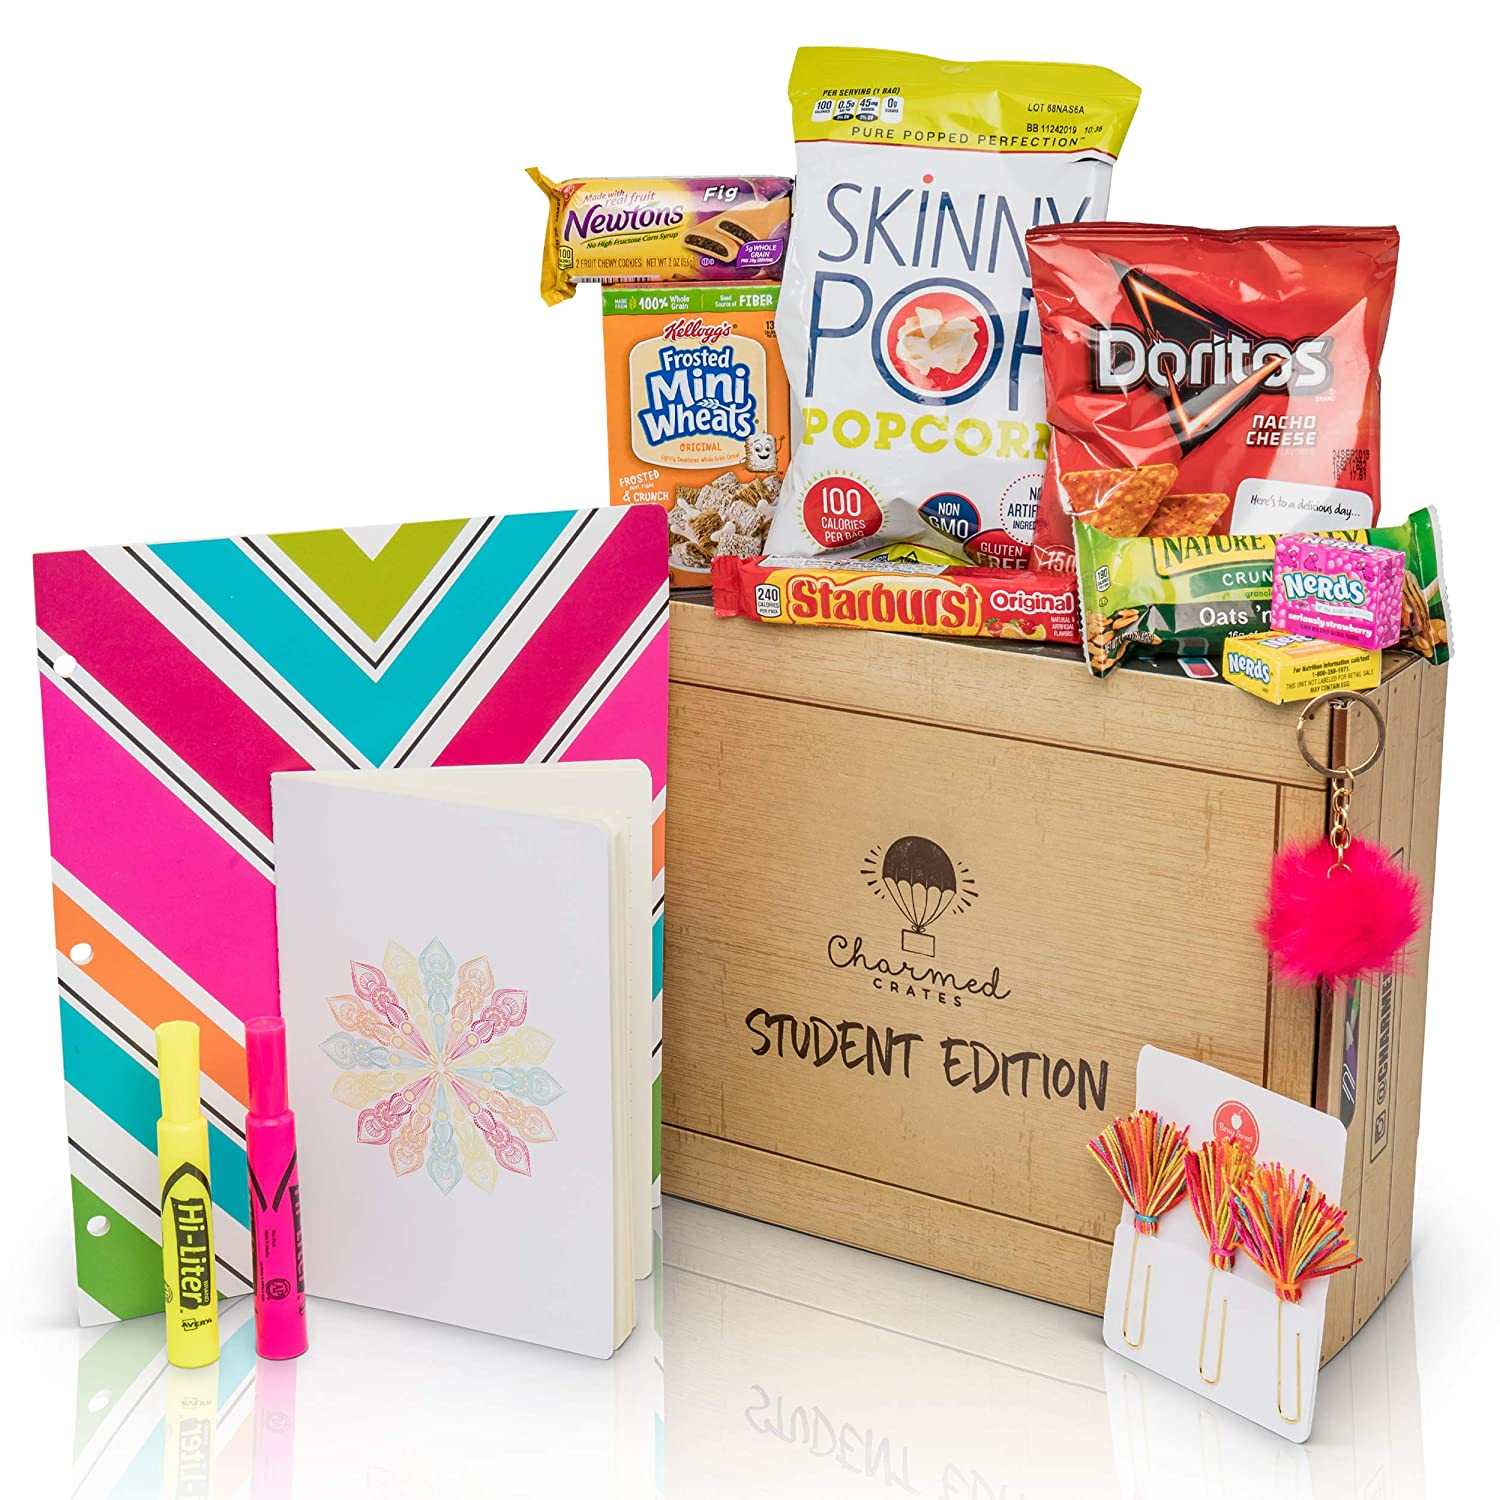 finals sticker kit ldr studying survival kit snack box exam College care package back to school pre-made box flaps student gift box